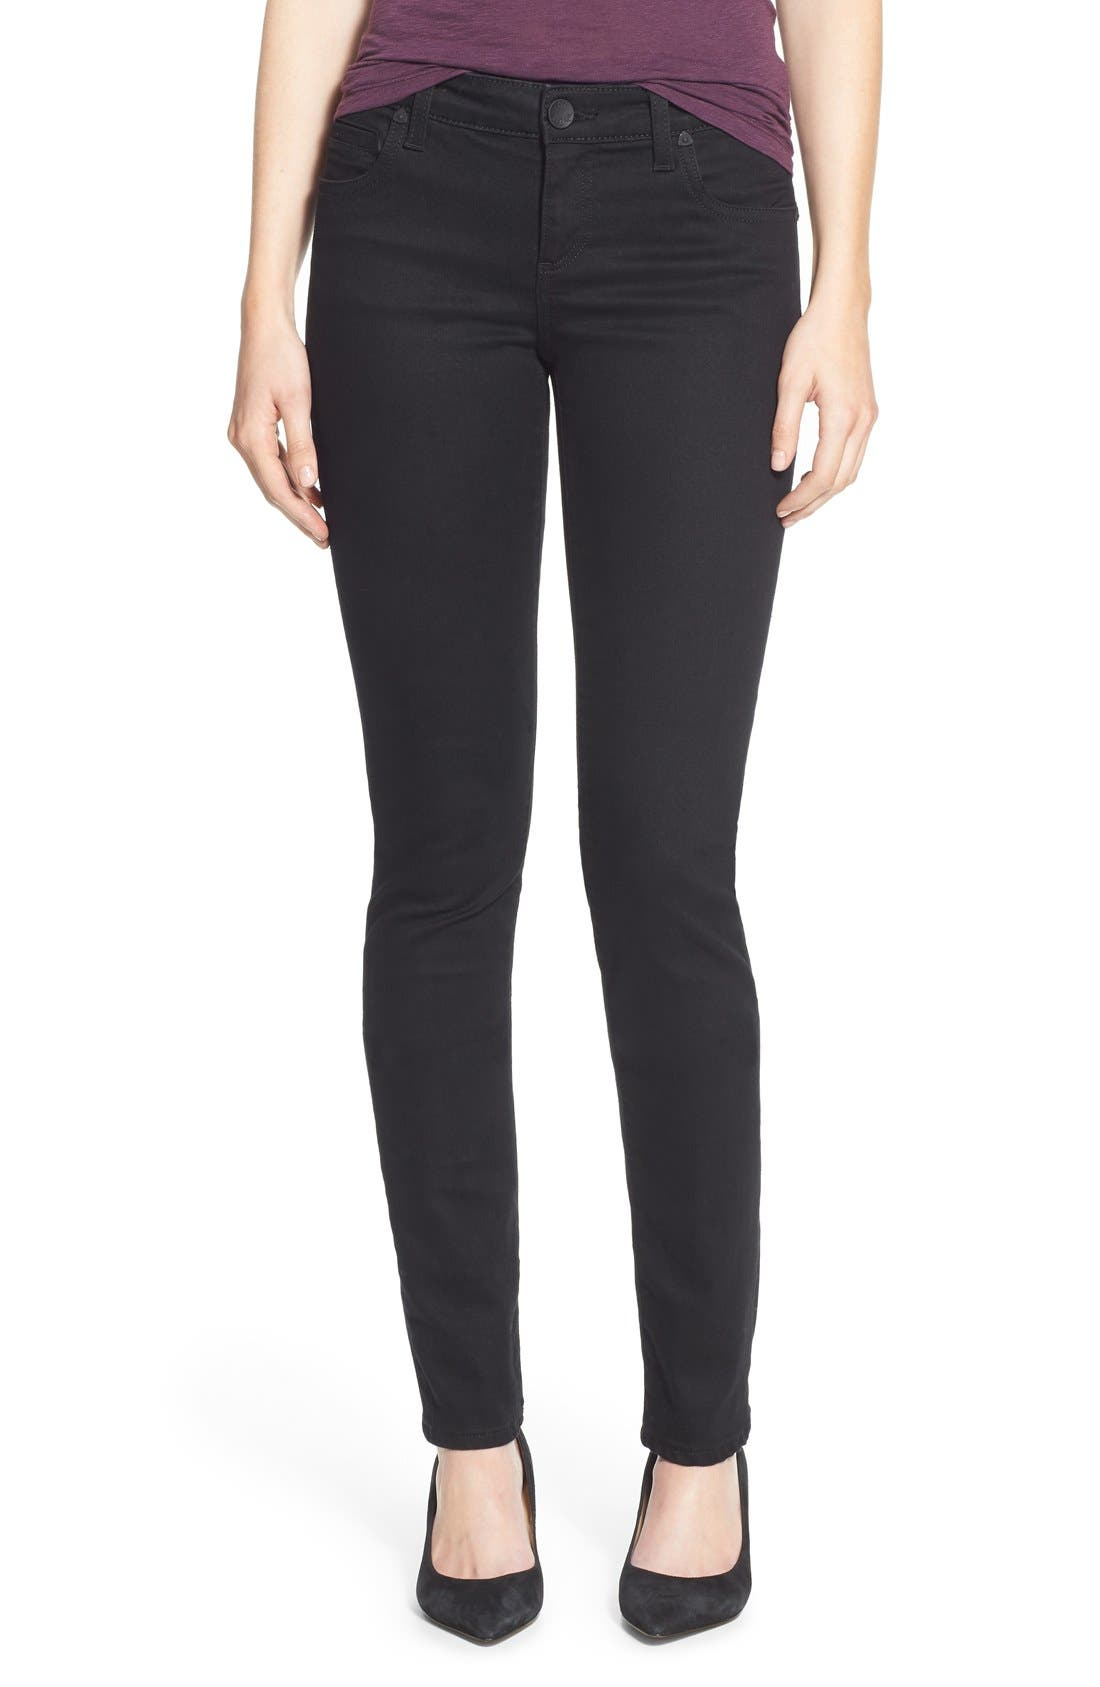 Main Image - KUT from the Kloth 'Diana' Stretch Skinny Jeans (Regular & Petite)